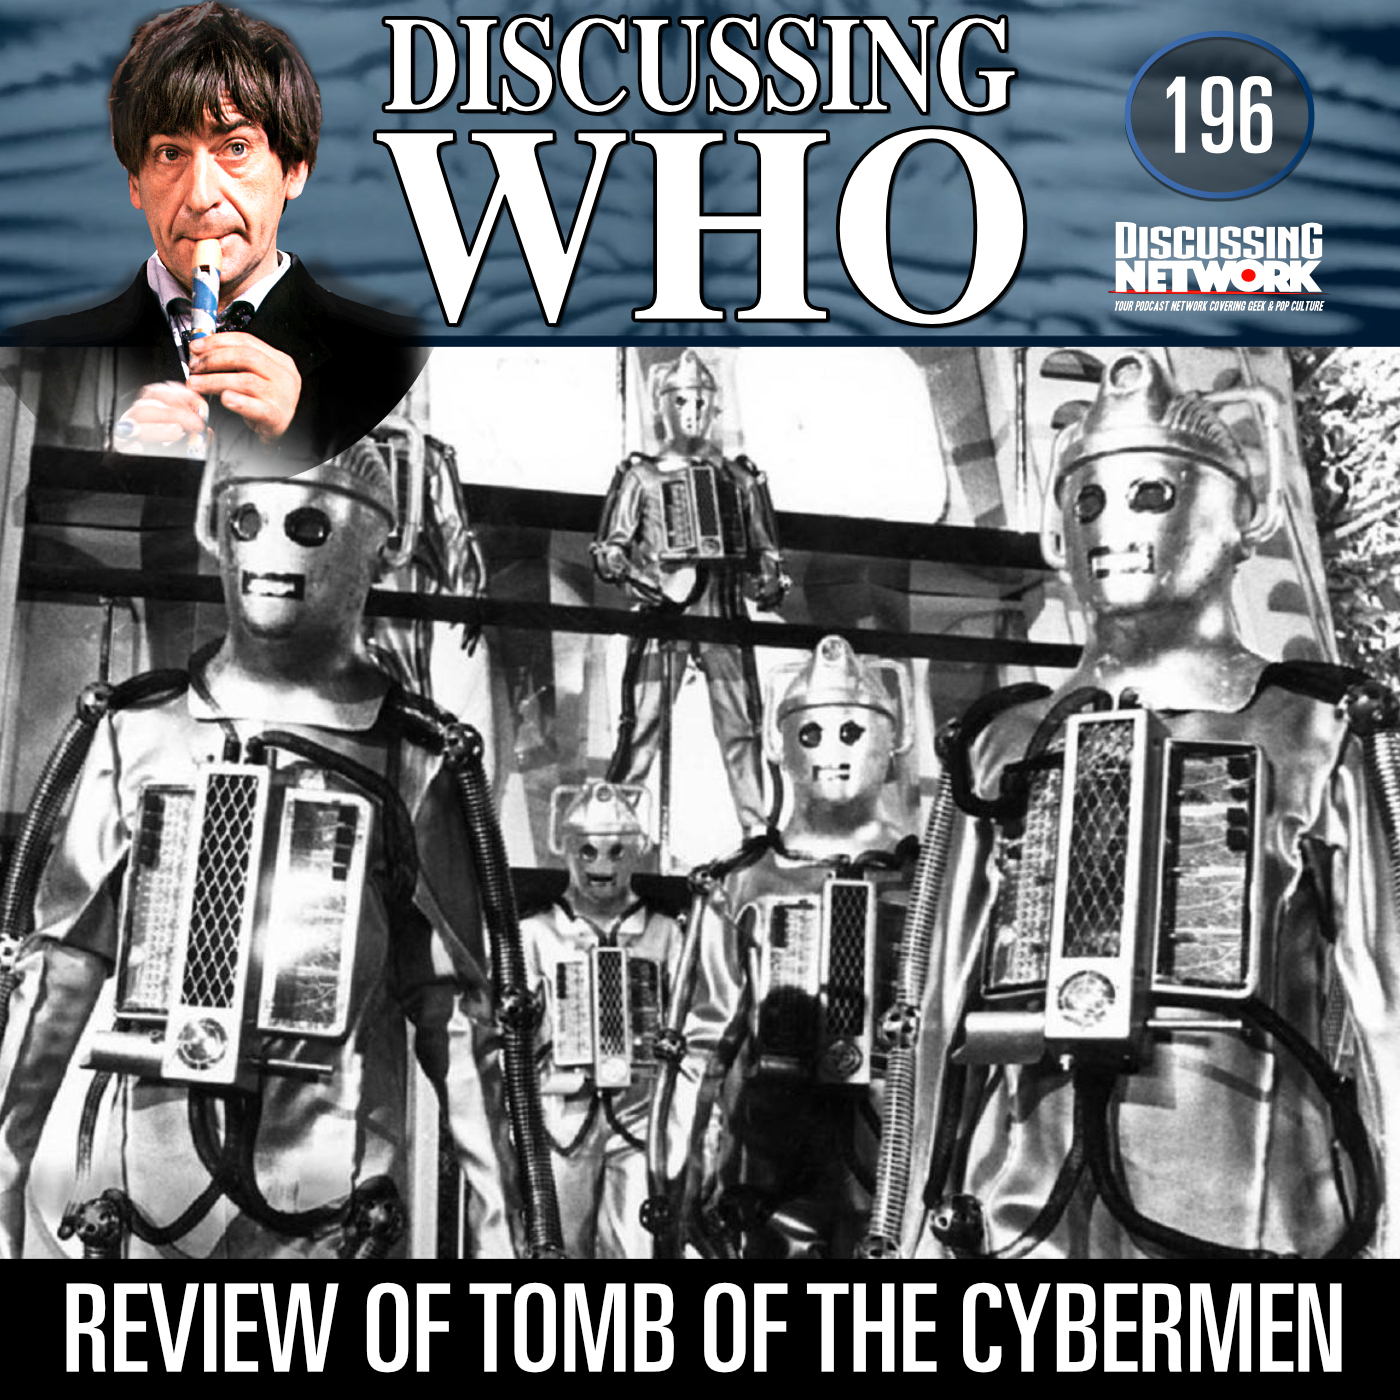 Discussing Who Review of Tomb of the Cybermen